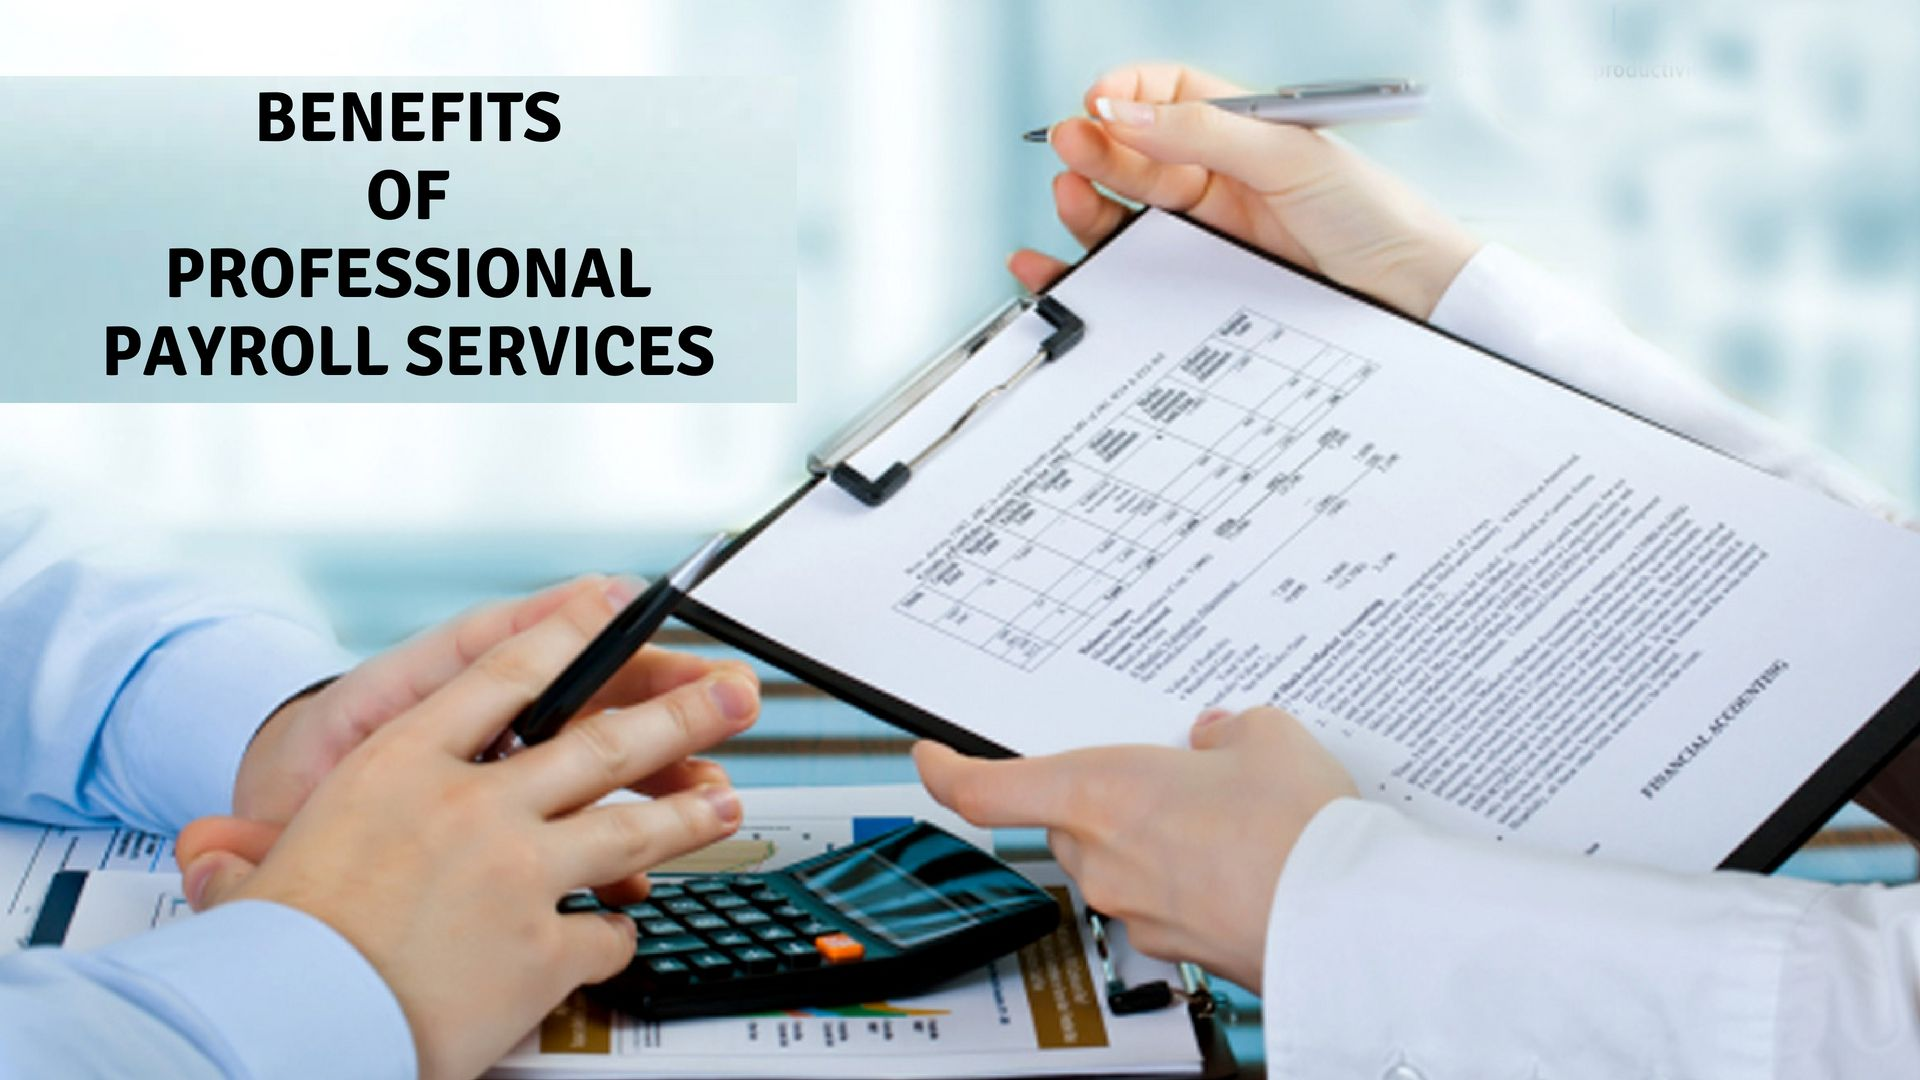 A Reputed Firm Offering Professionalpayroll Services Dependably